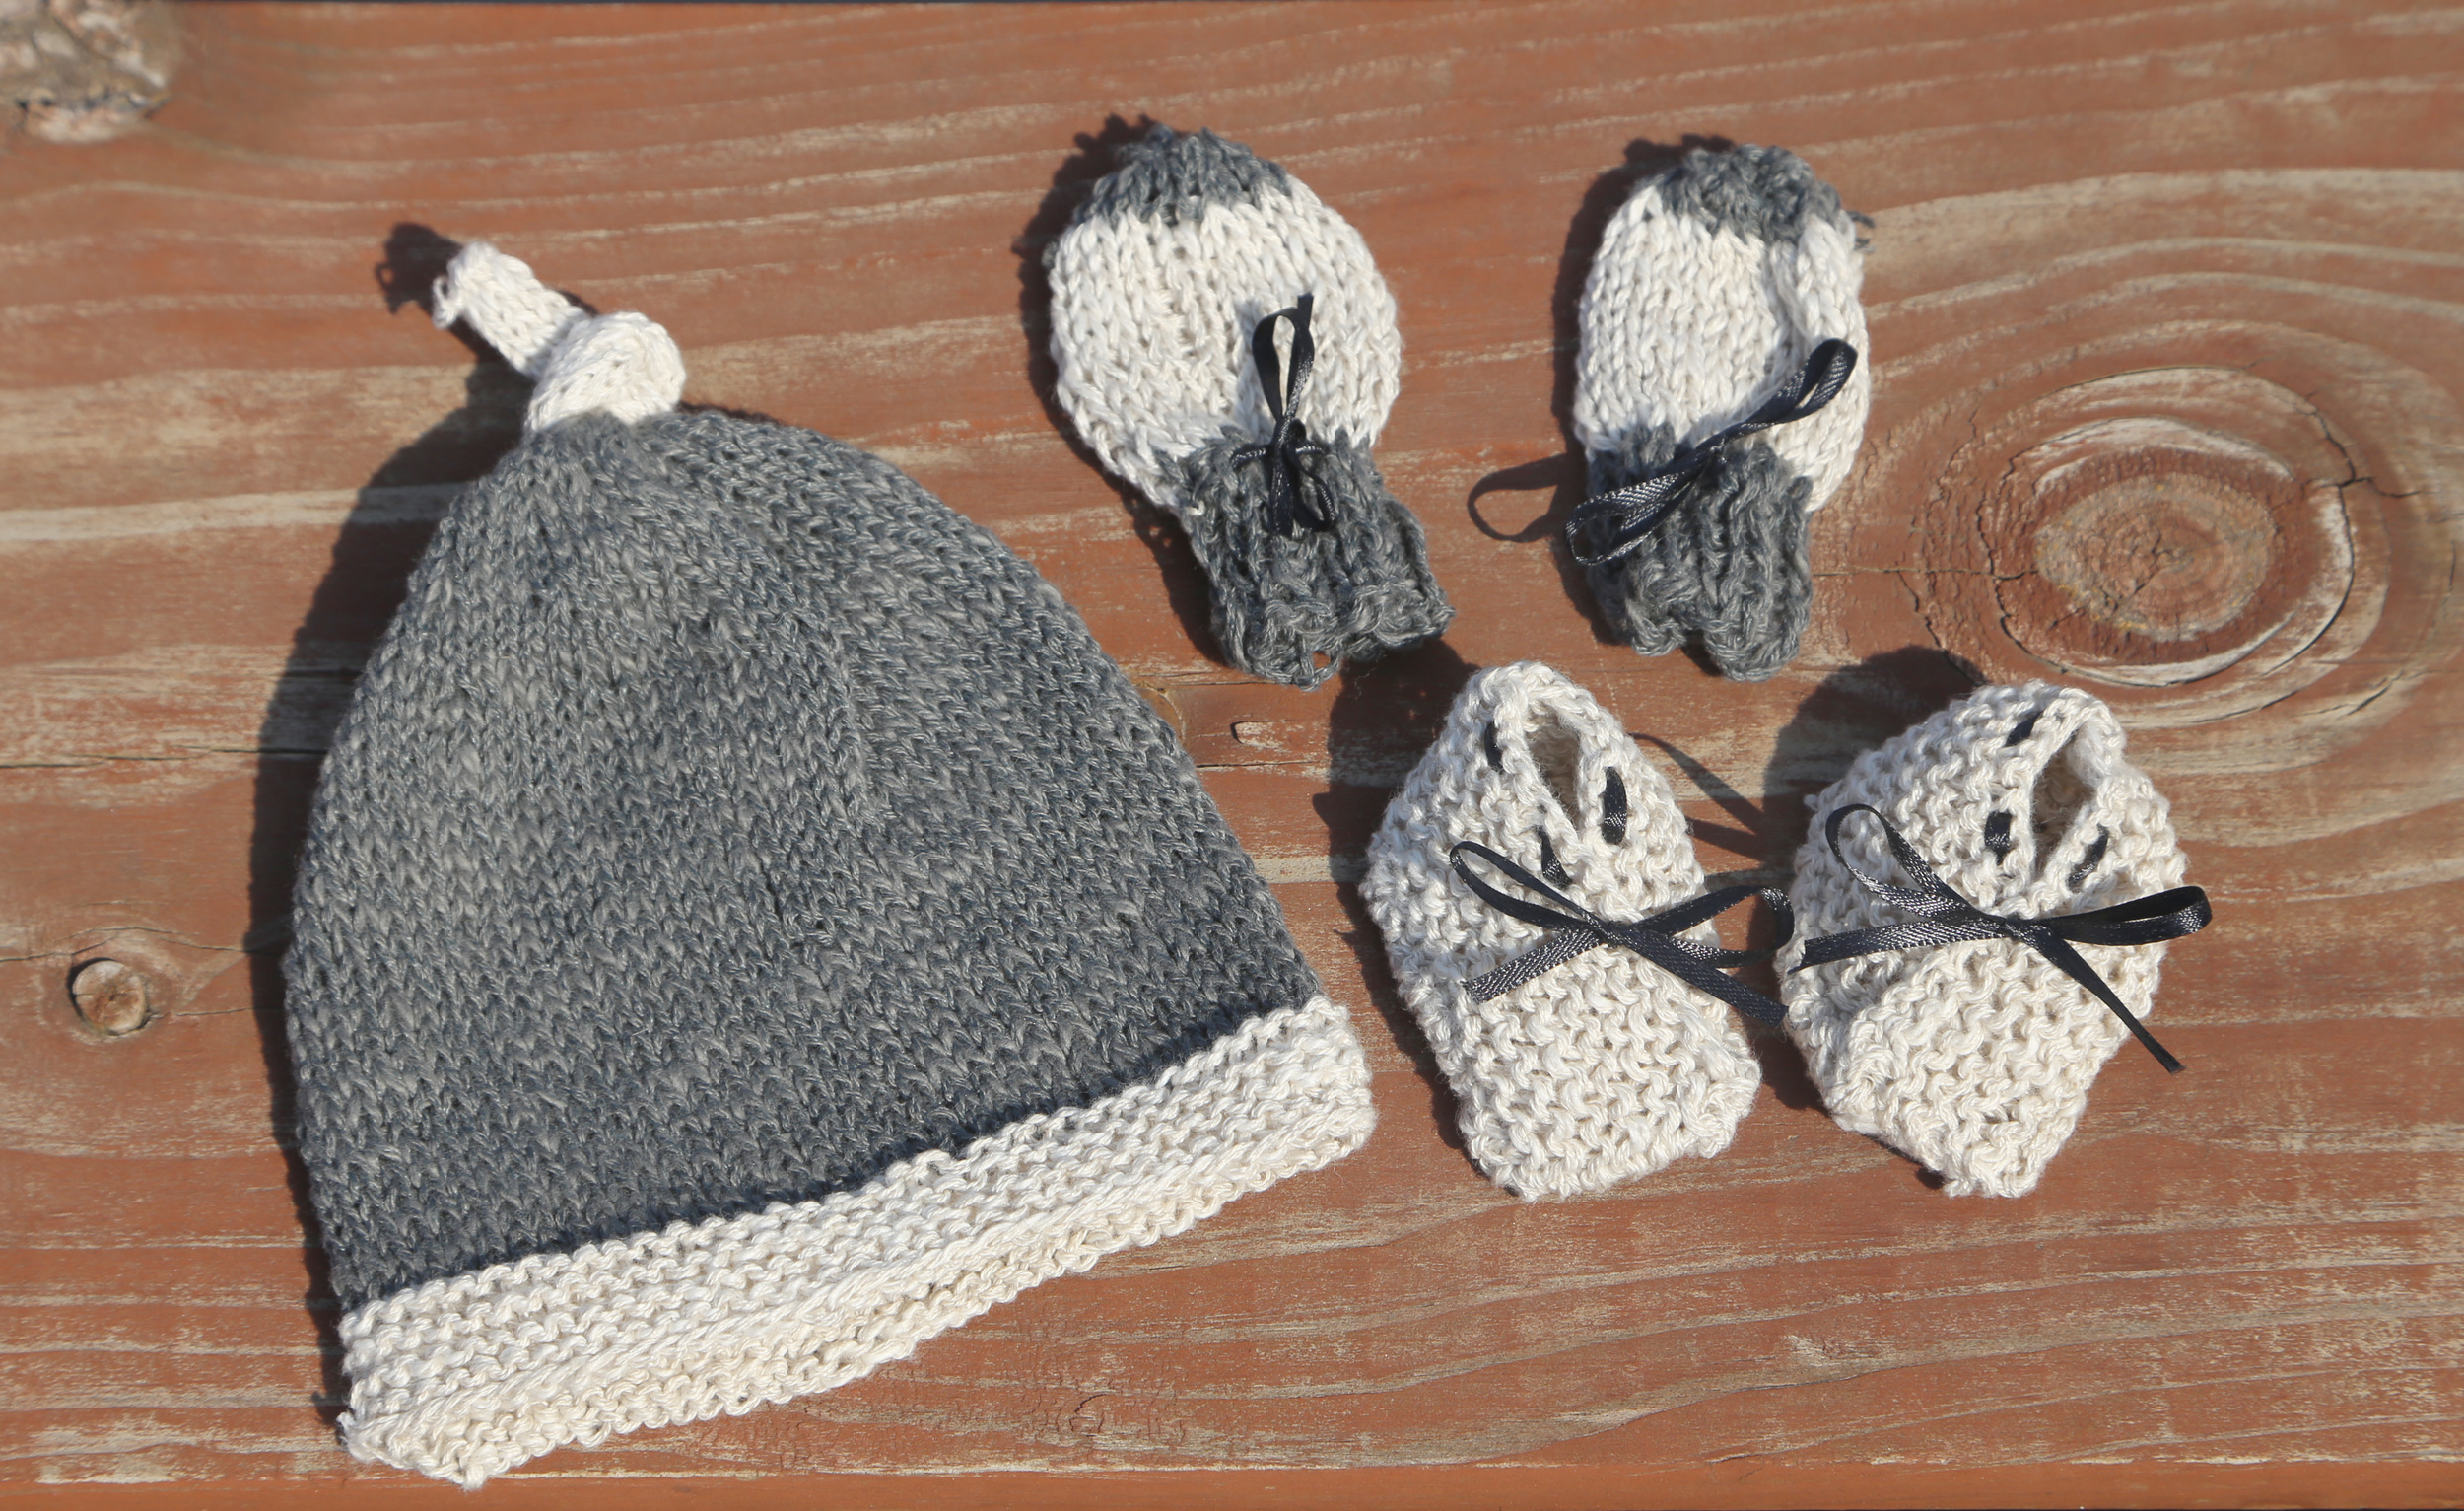 Top knot hat  by Mack and Mabel,  baby mitts  by Spud and Chloe,  bitty baby booties  by Small + Friendly